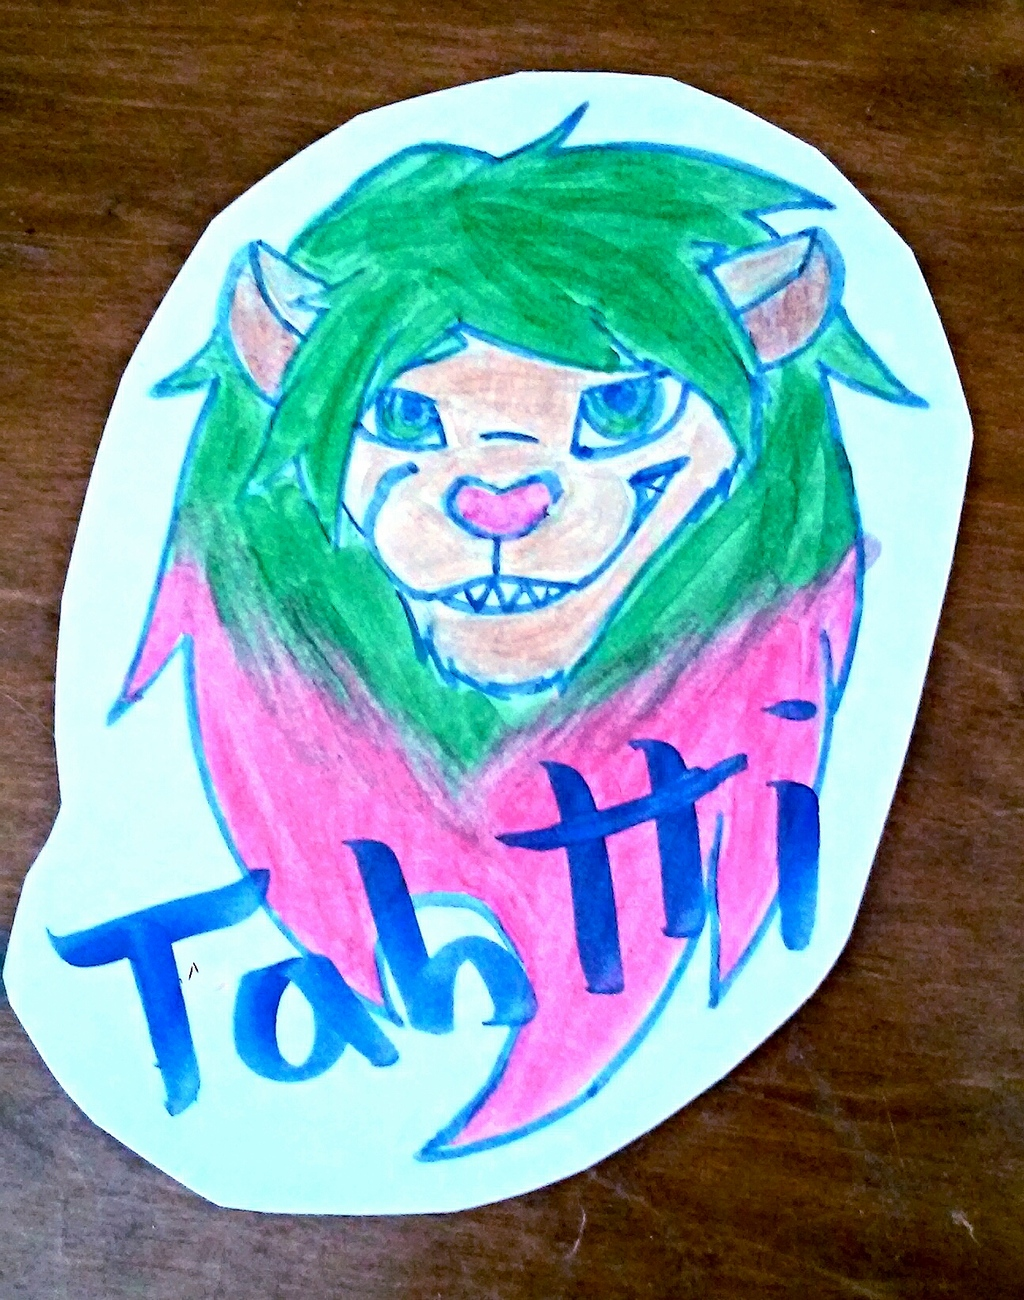 Most recent image: Tahtti badge